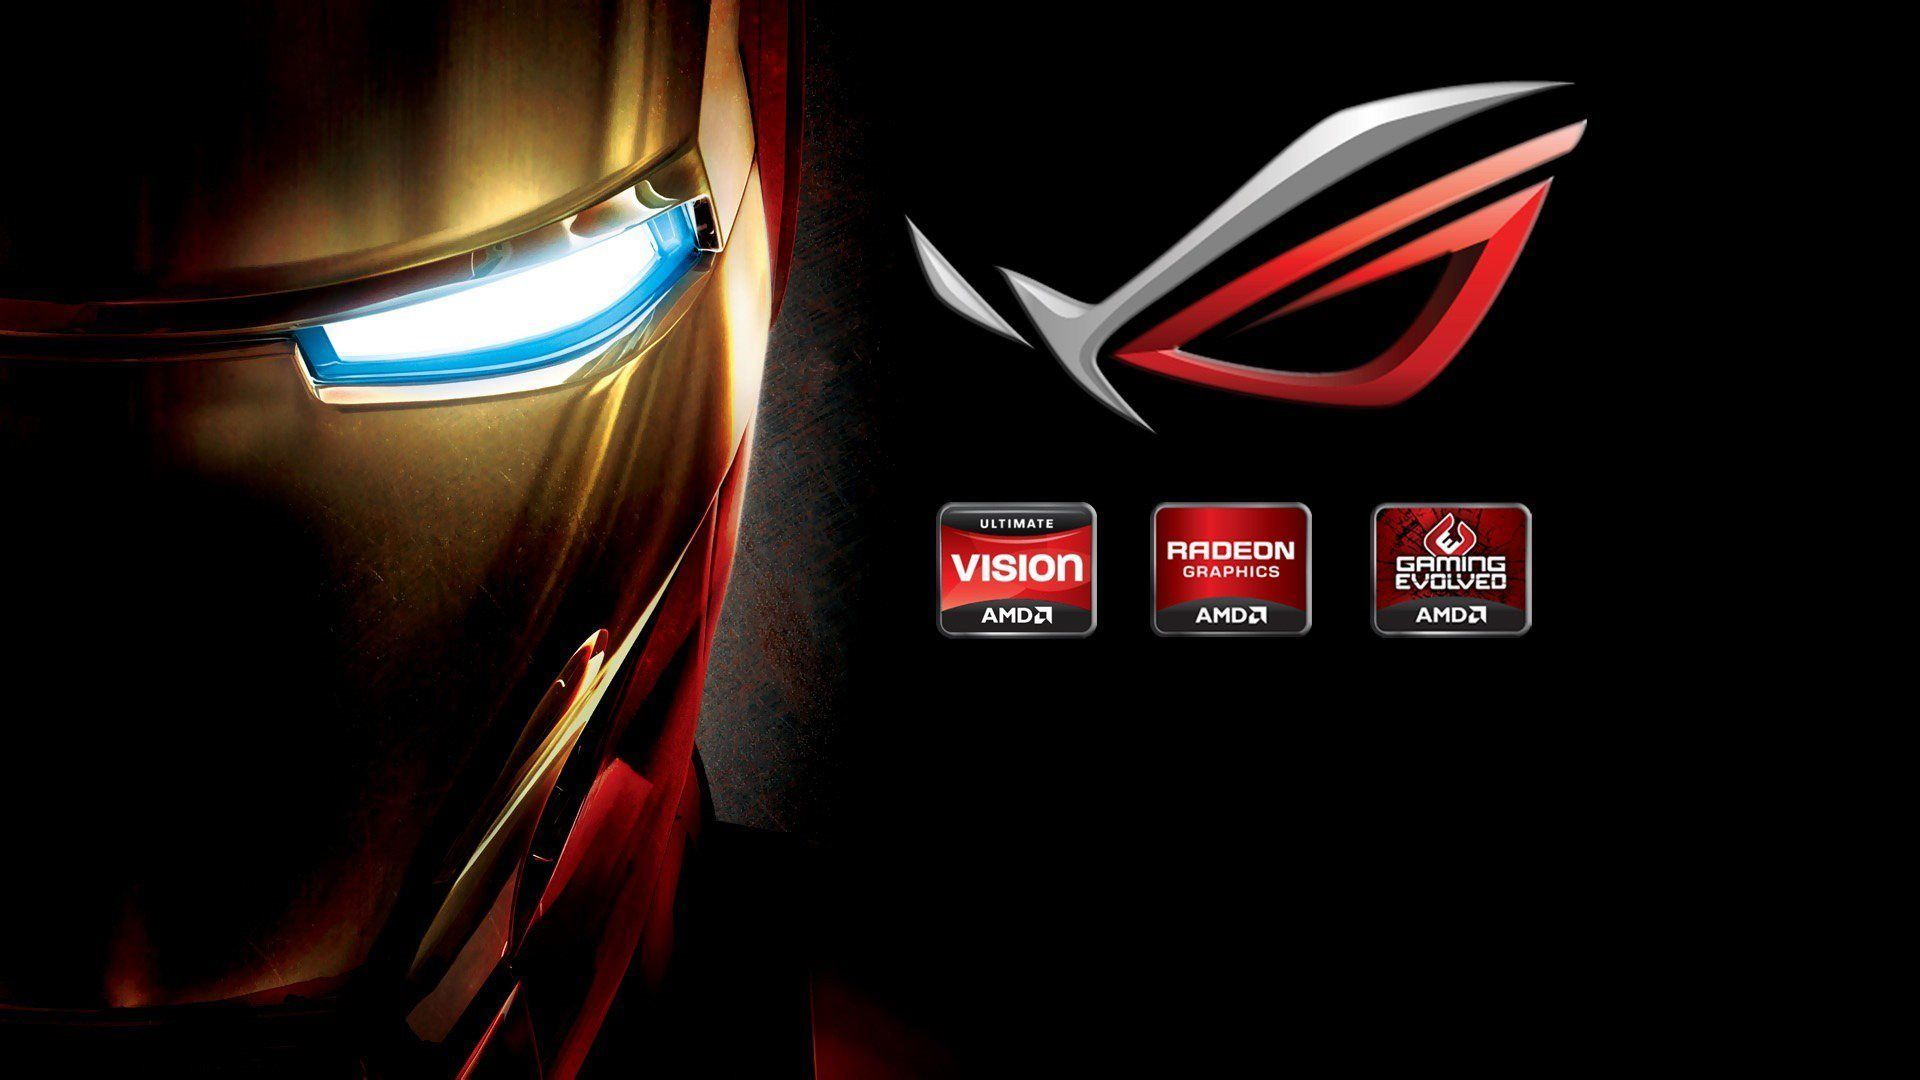 ironman amd rog hd 1080p widescreen wallpapers | places to visit